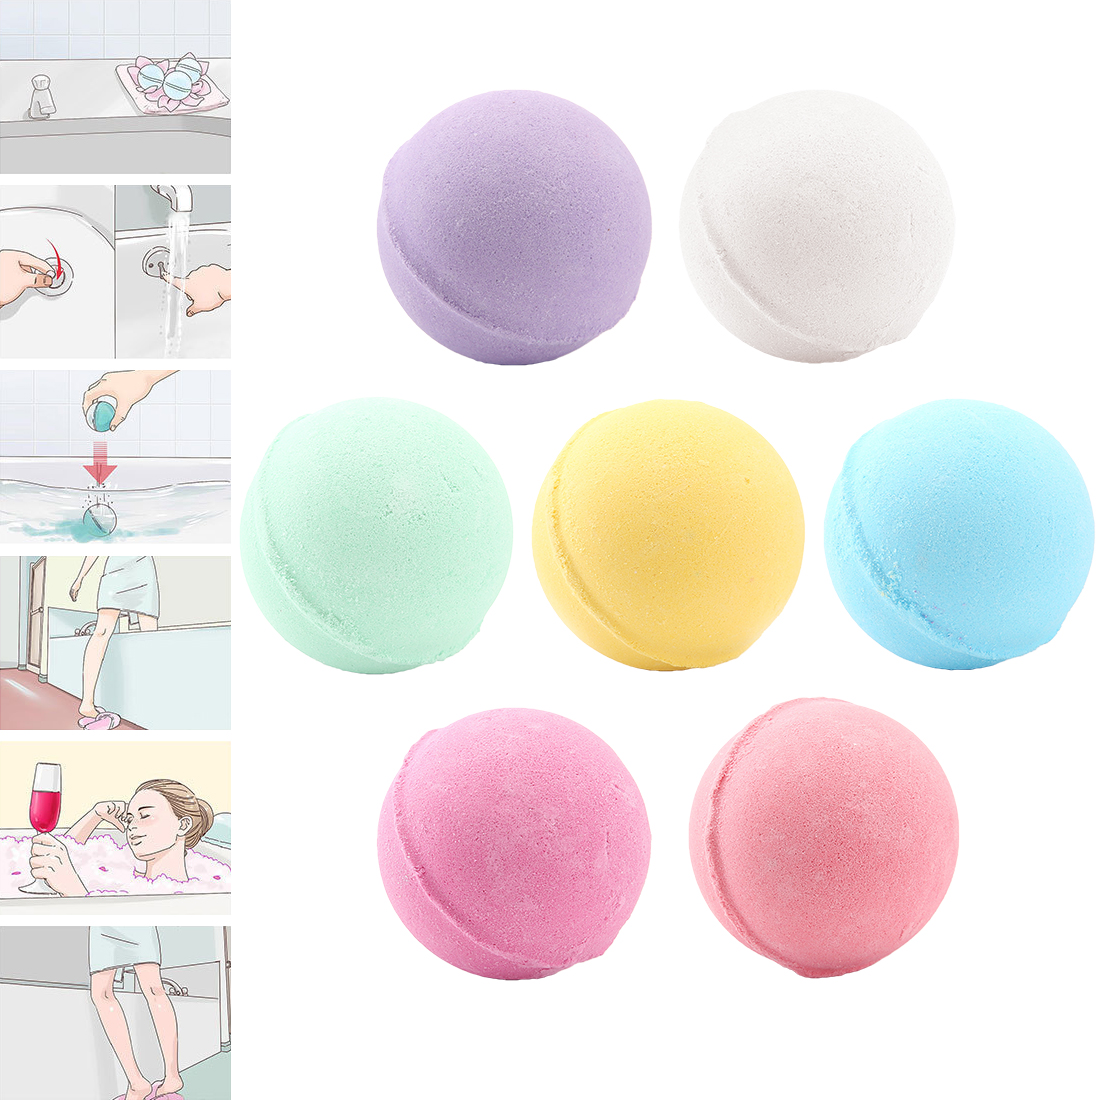 Whitening Shower Bomb 1pcs Deep Sea Bath Salt Body Essential Oil Bath Ball Natural Bubble Bath Rose Green Lemon Milk Random